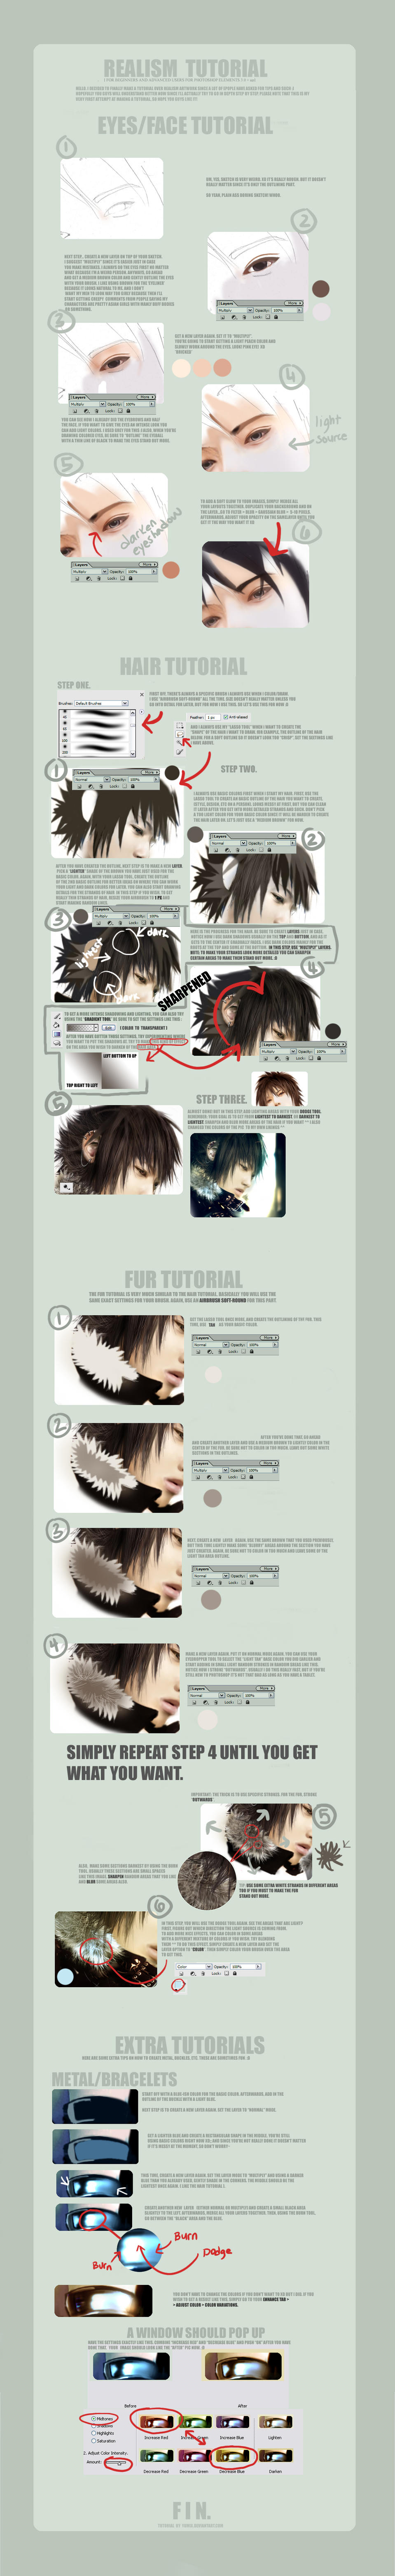 Realism Tutorial by yumix